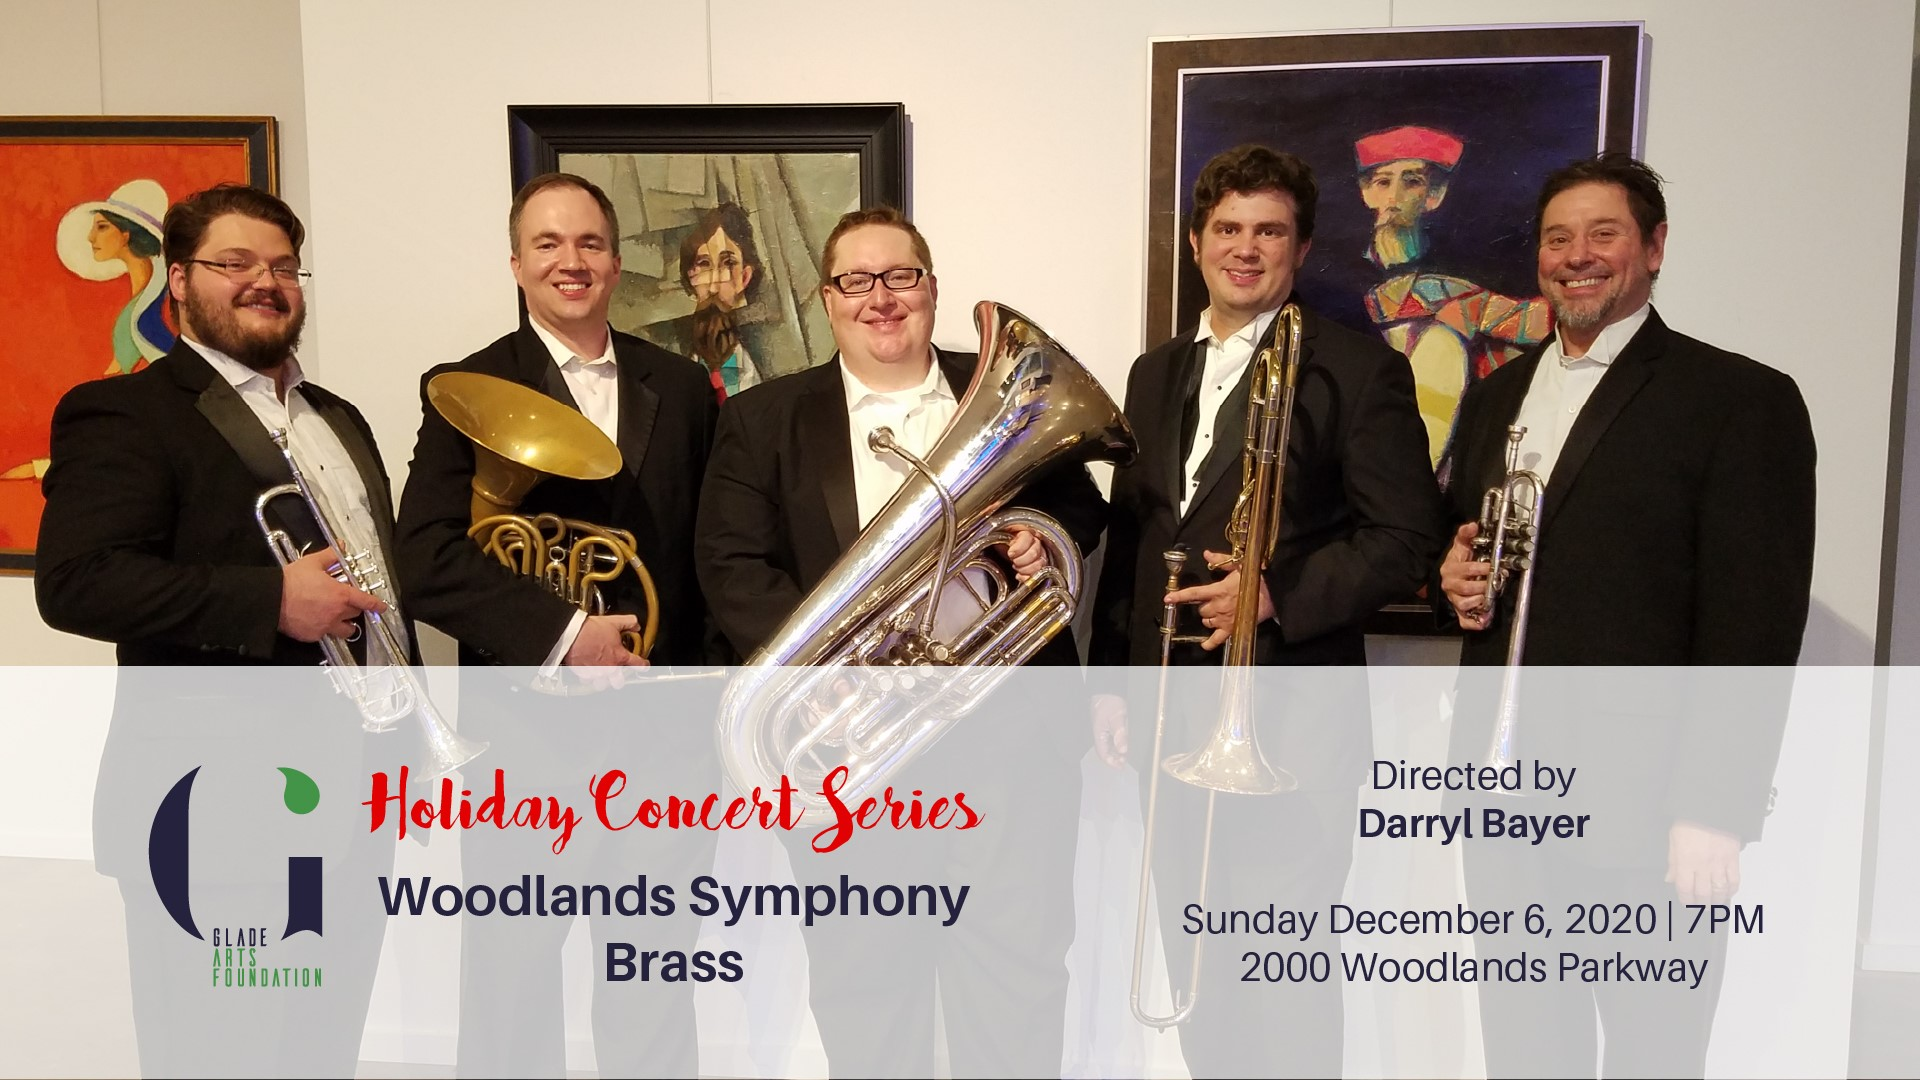 Holiday Concert Series Woodlands Symphony